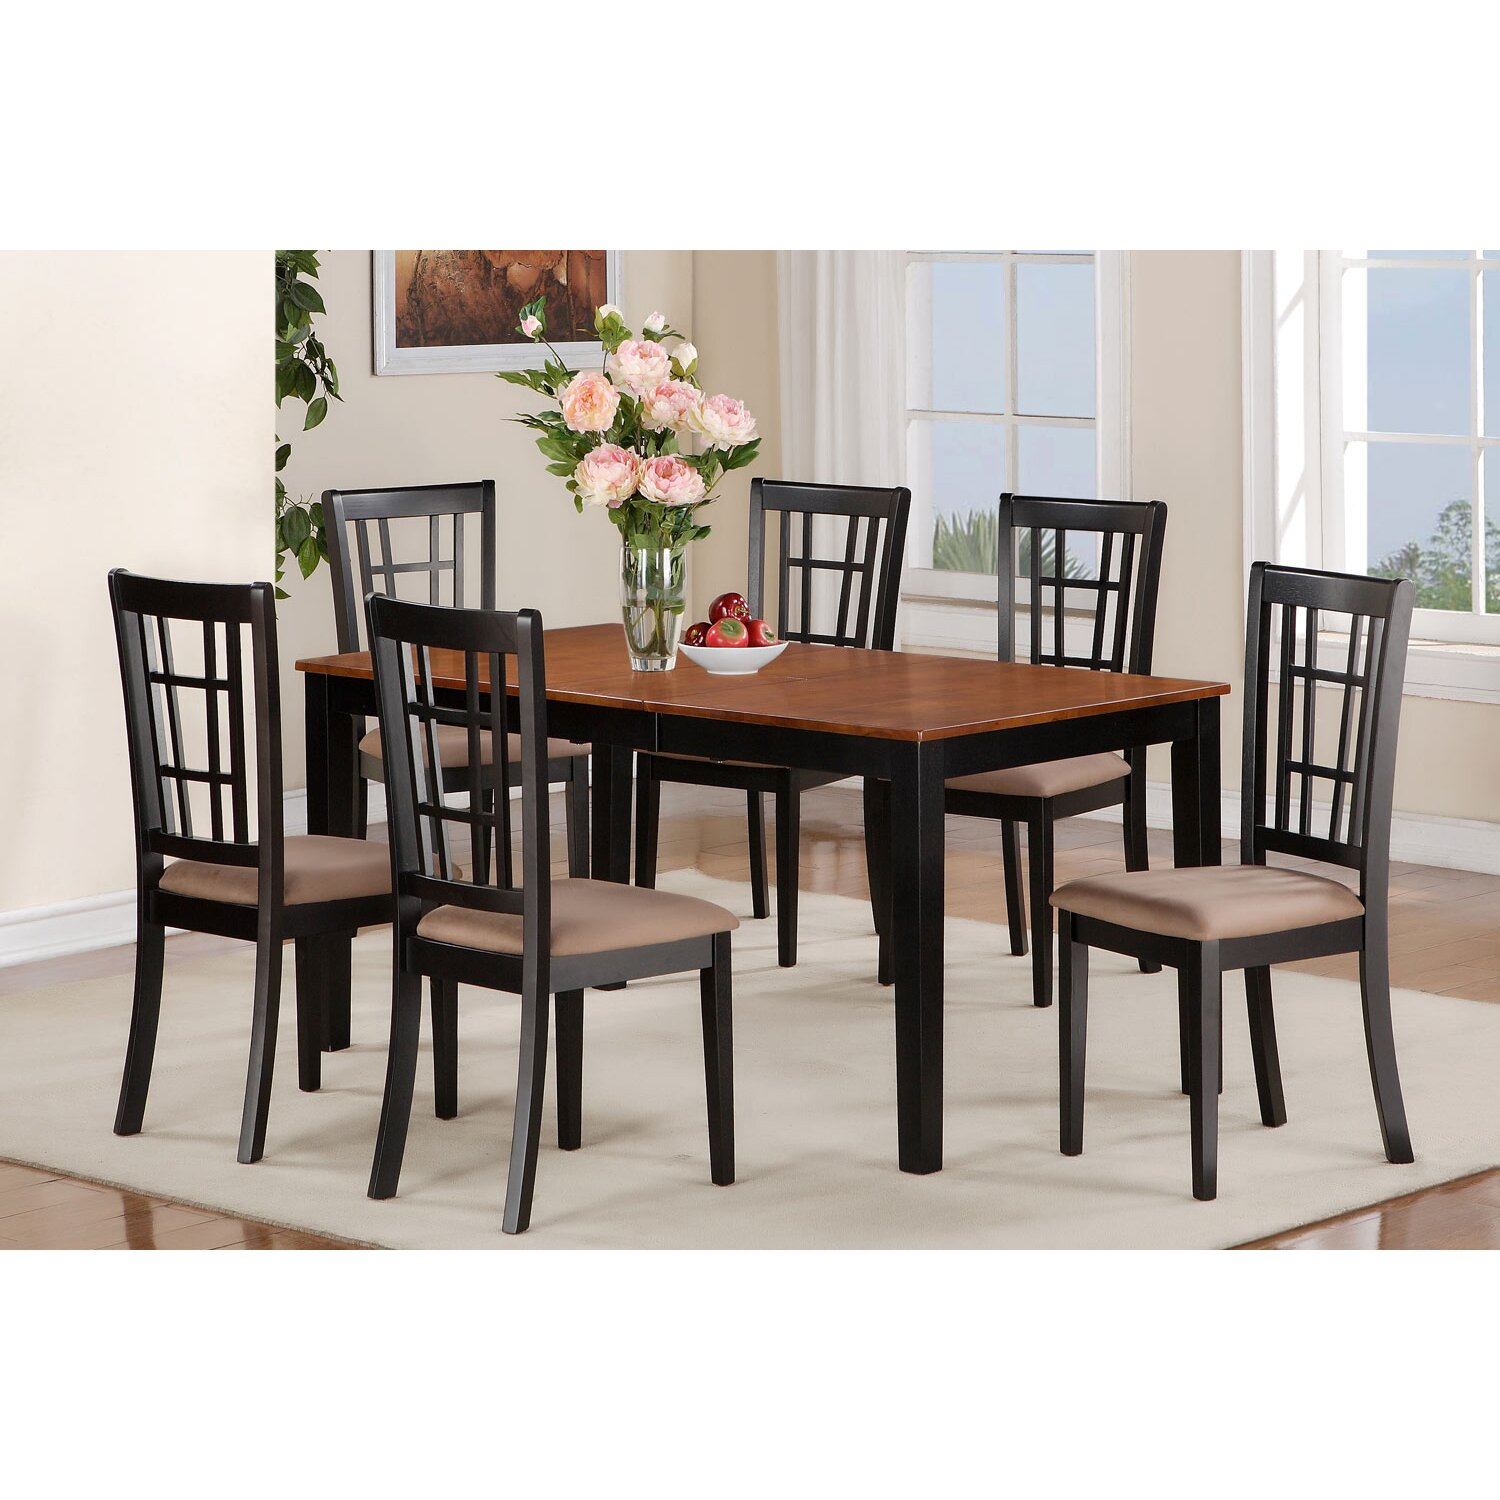 East west nicoli 7 piece dining set reviews wayfair for Kitchen dining sets